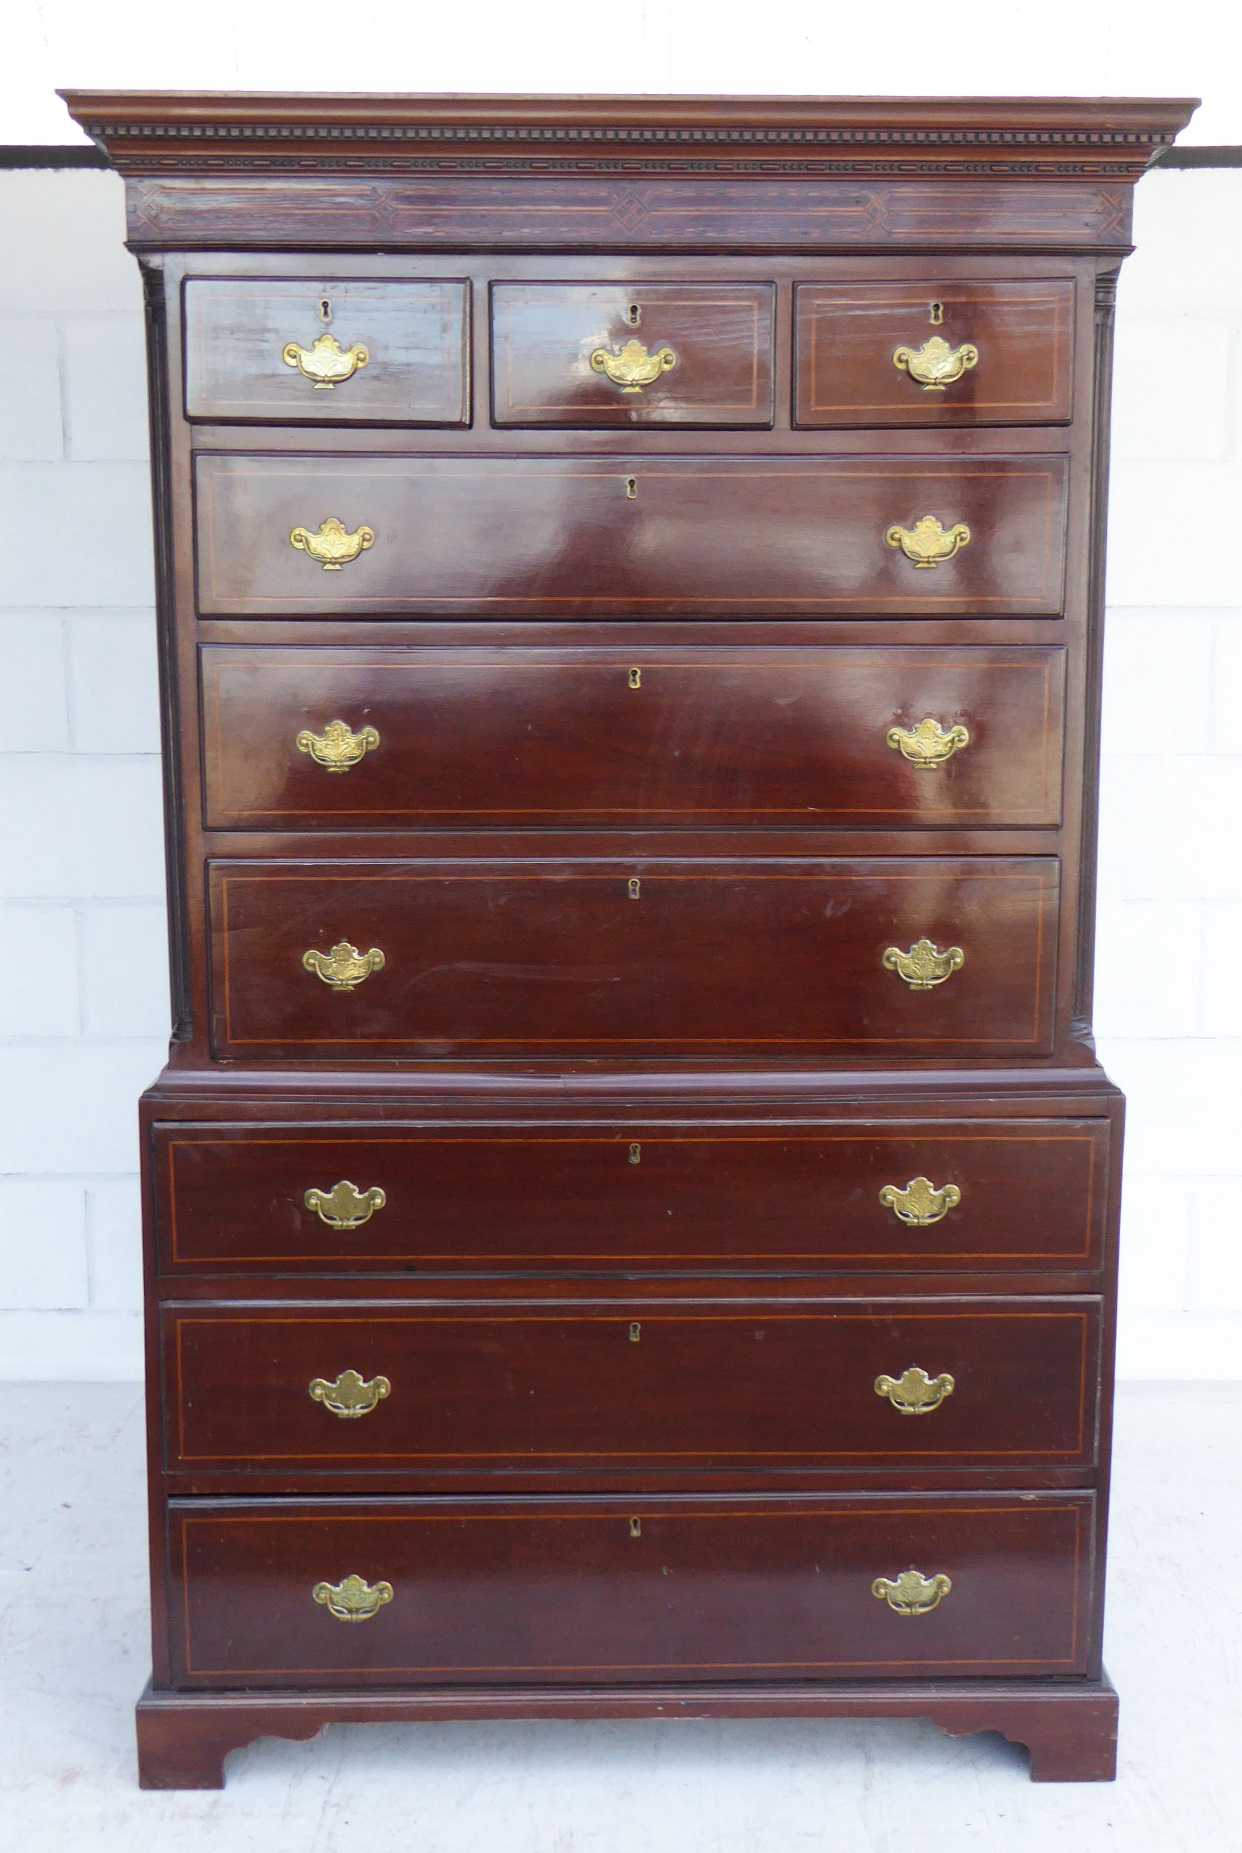 George Iii Mahogany Inlaid Chest On Chest Fgb Antiques